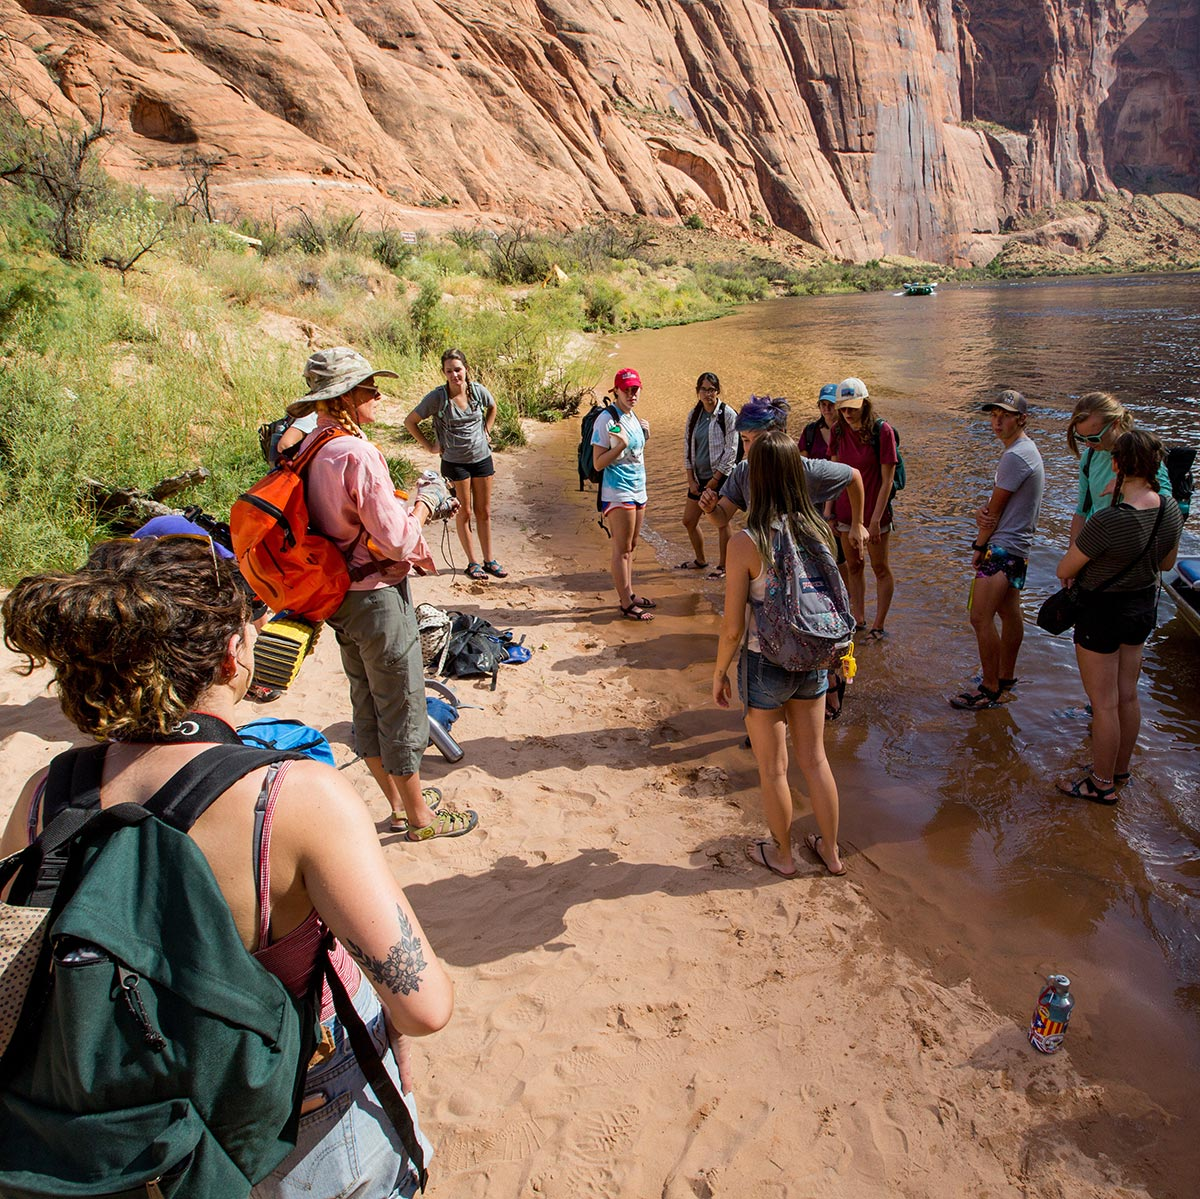 Students and an instructor stand on the edge of a body of water at the Colorado Plateau